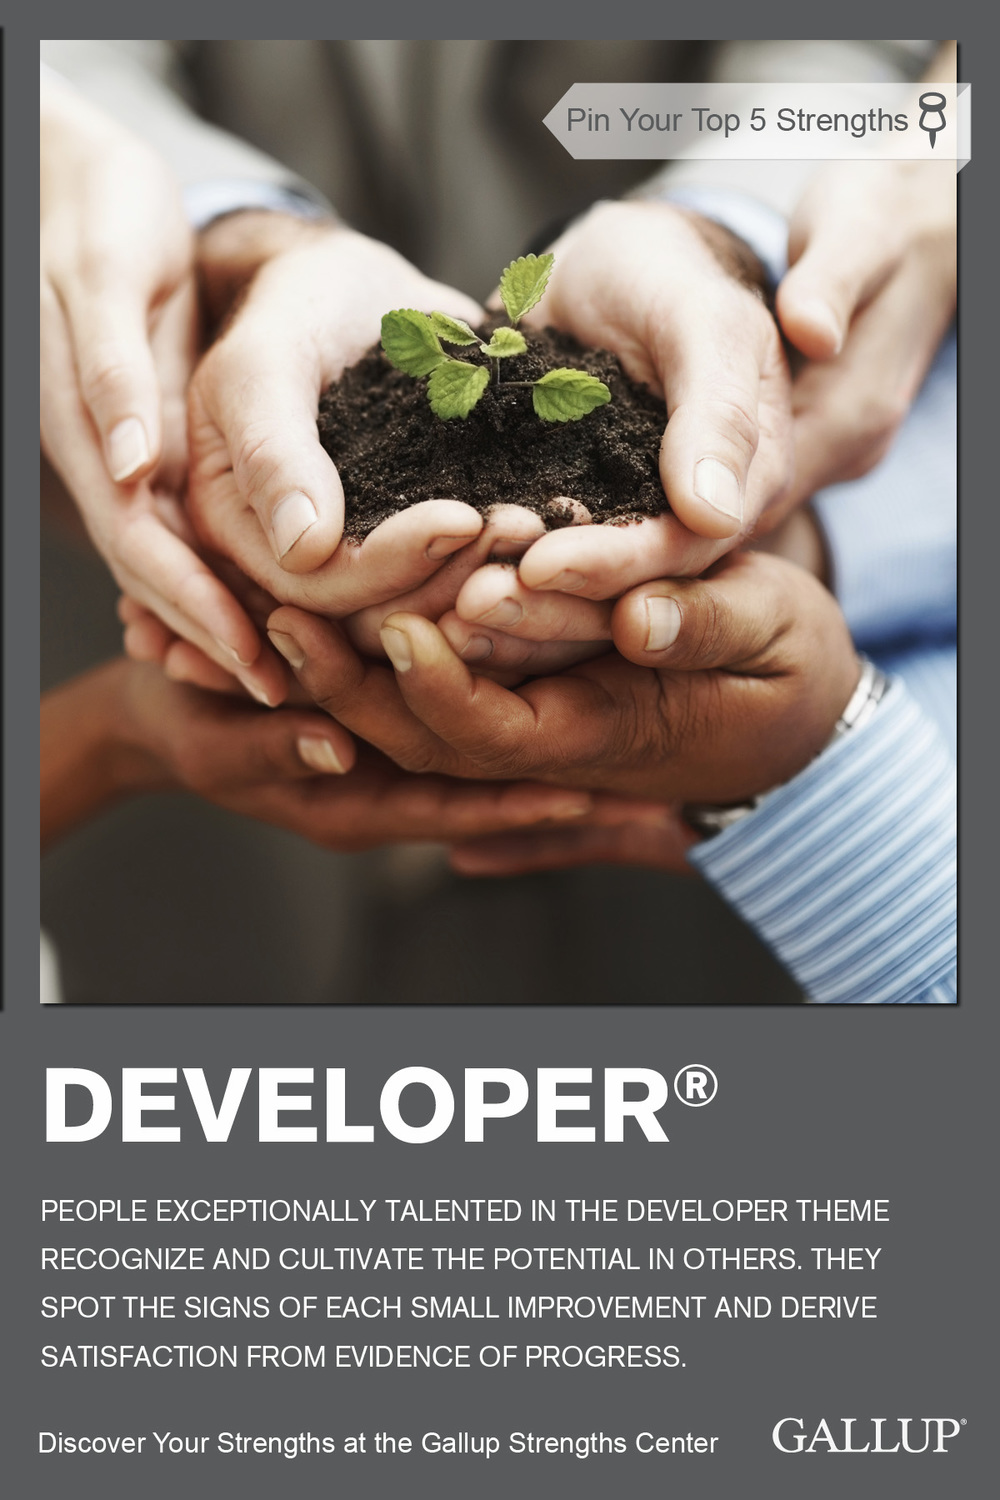 Developer Strengths School StrengthsFinder Singapore.jpg